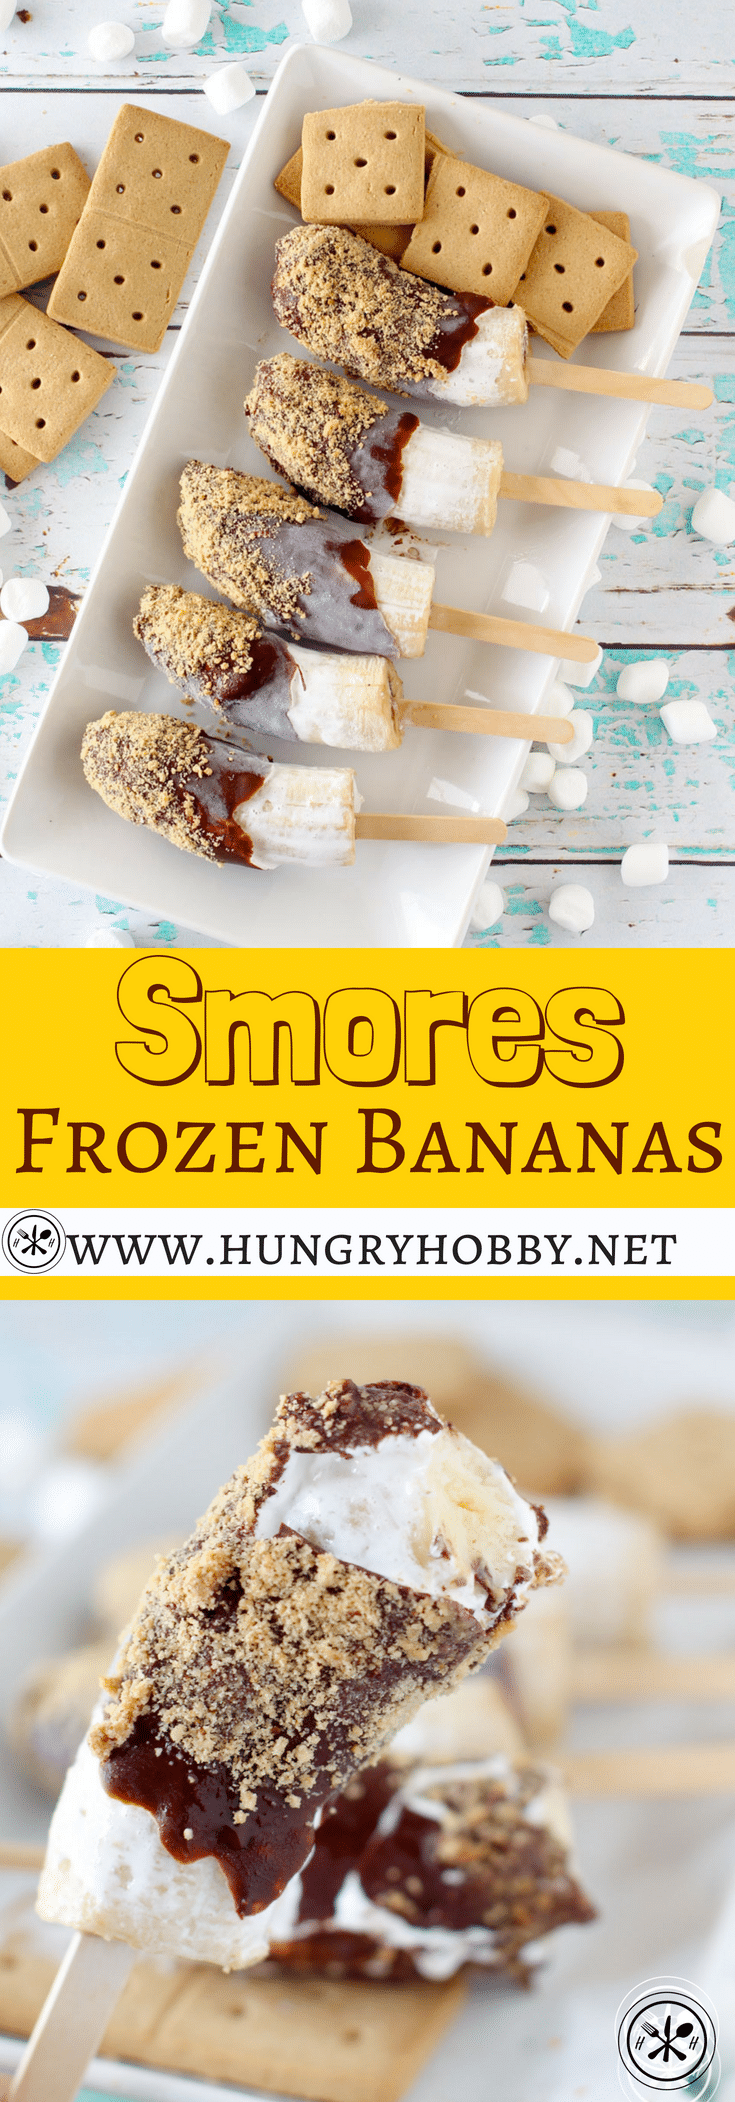 This Smores Frozen Banana #Dessert is the perfect way to get your smores fix in a slightly healthier fashion!  #glutenfree #dairyfree #smores #hungryhobby #healthydessert